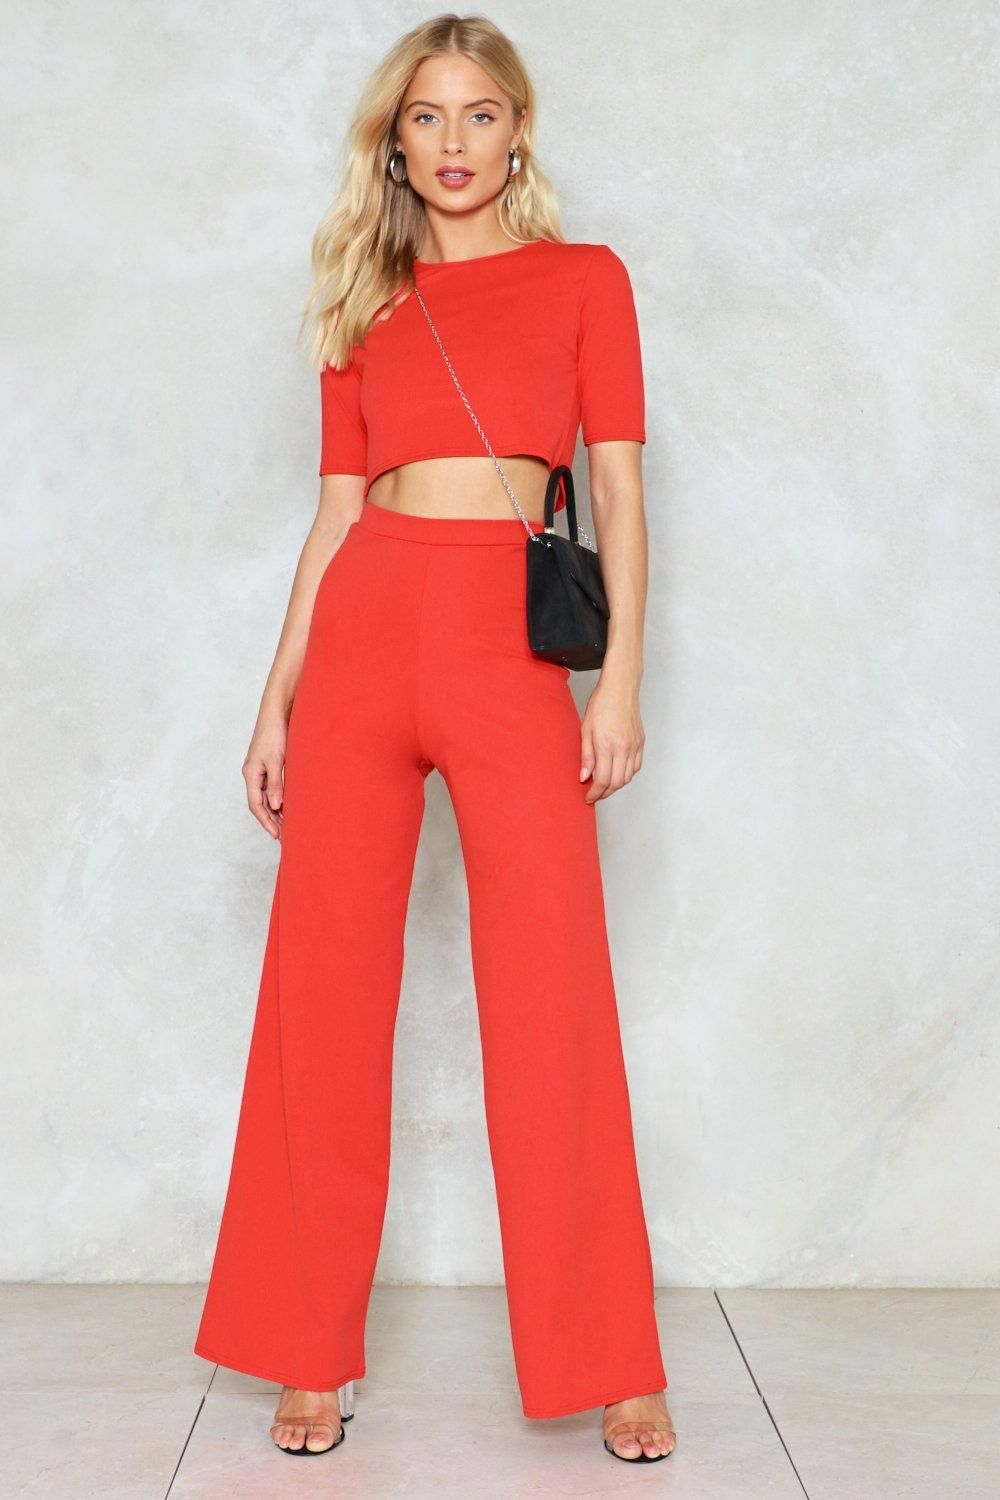 56f4c87cbaebf4 This crop top features a crew neckline and cropped silhouette. The matching  pants feature an elasticized waist and high-waisted